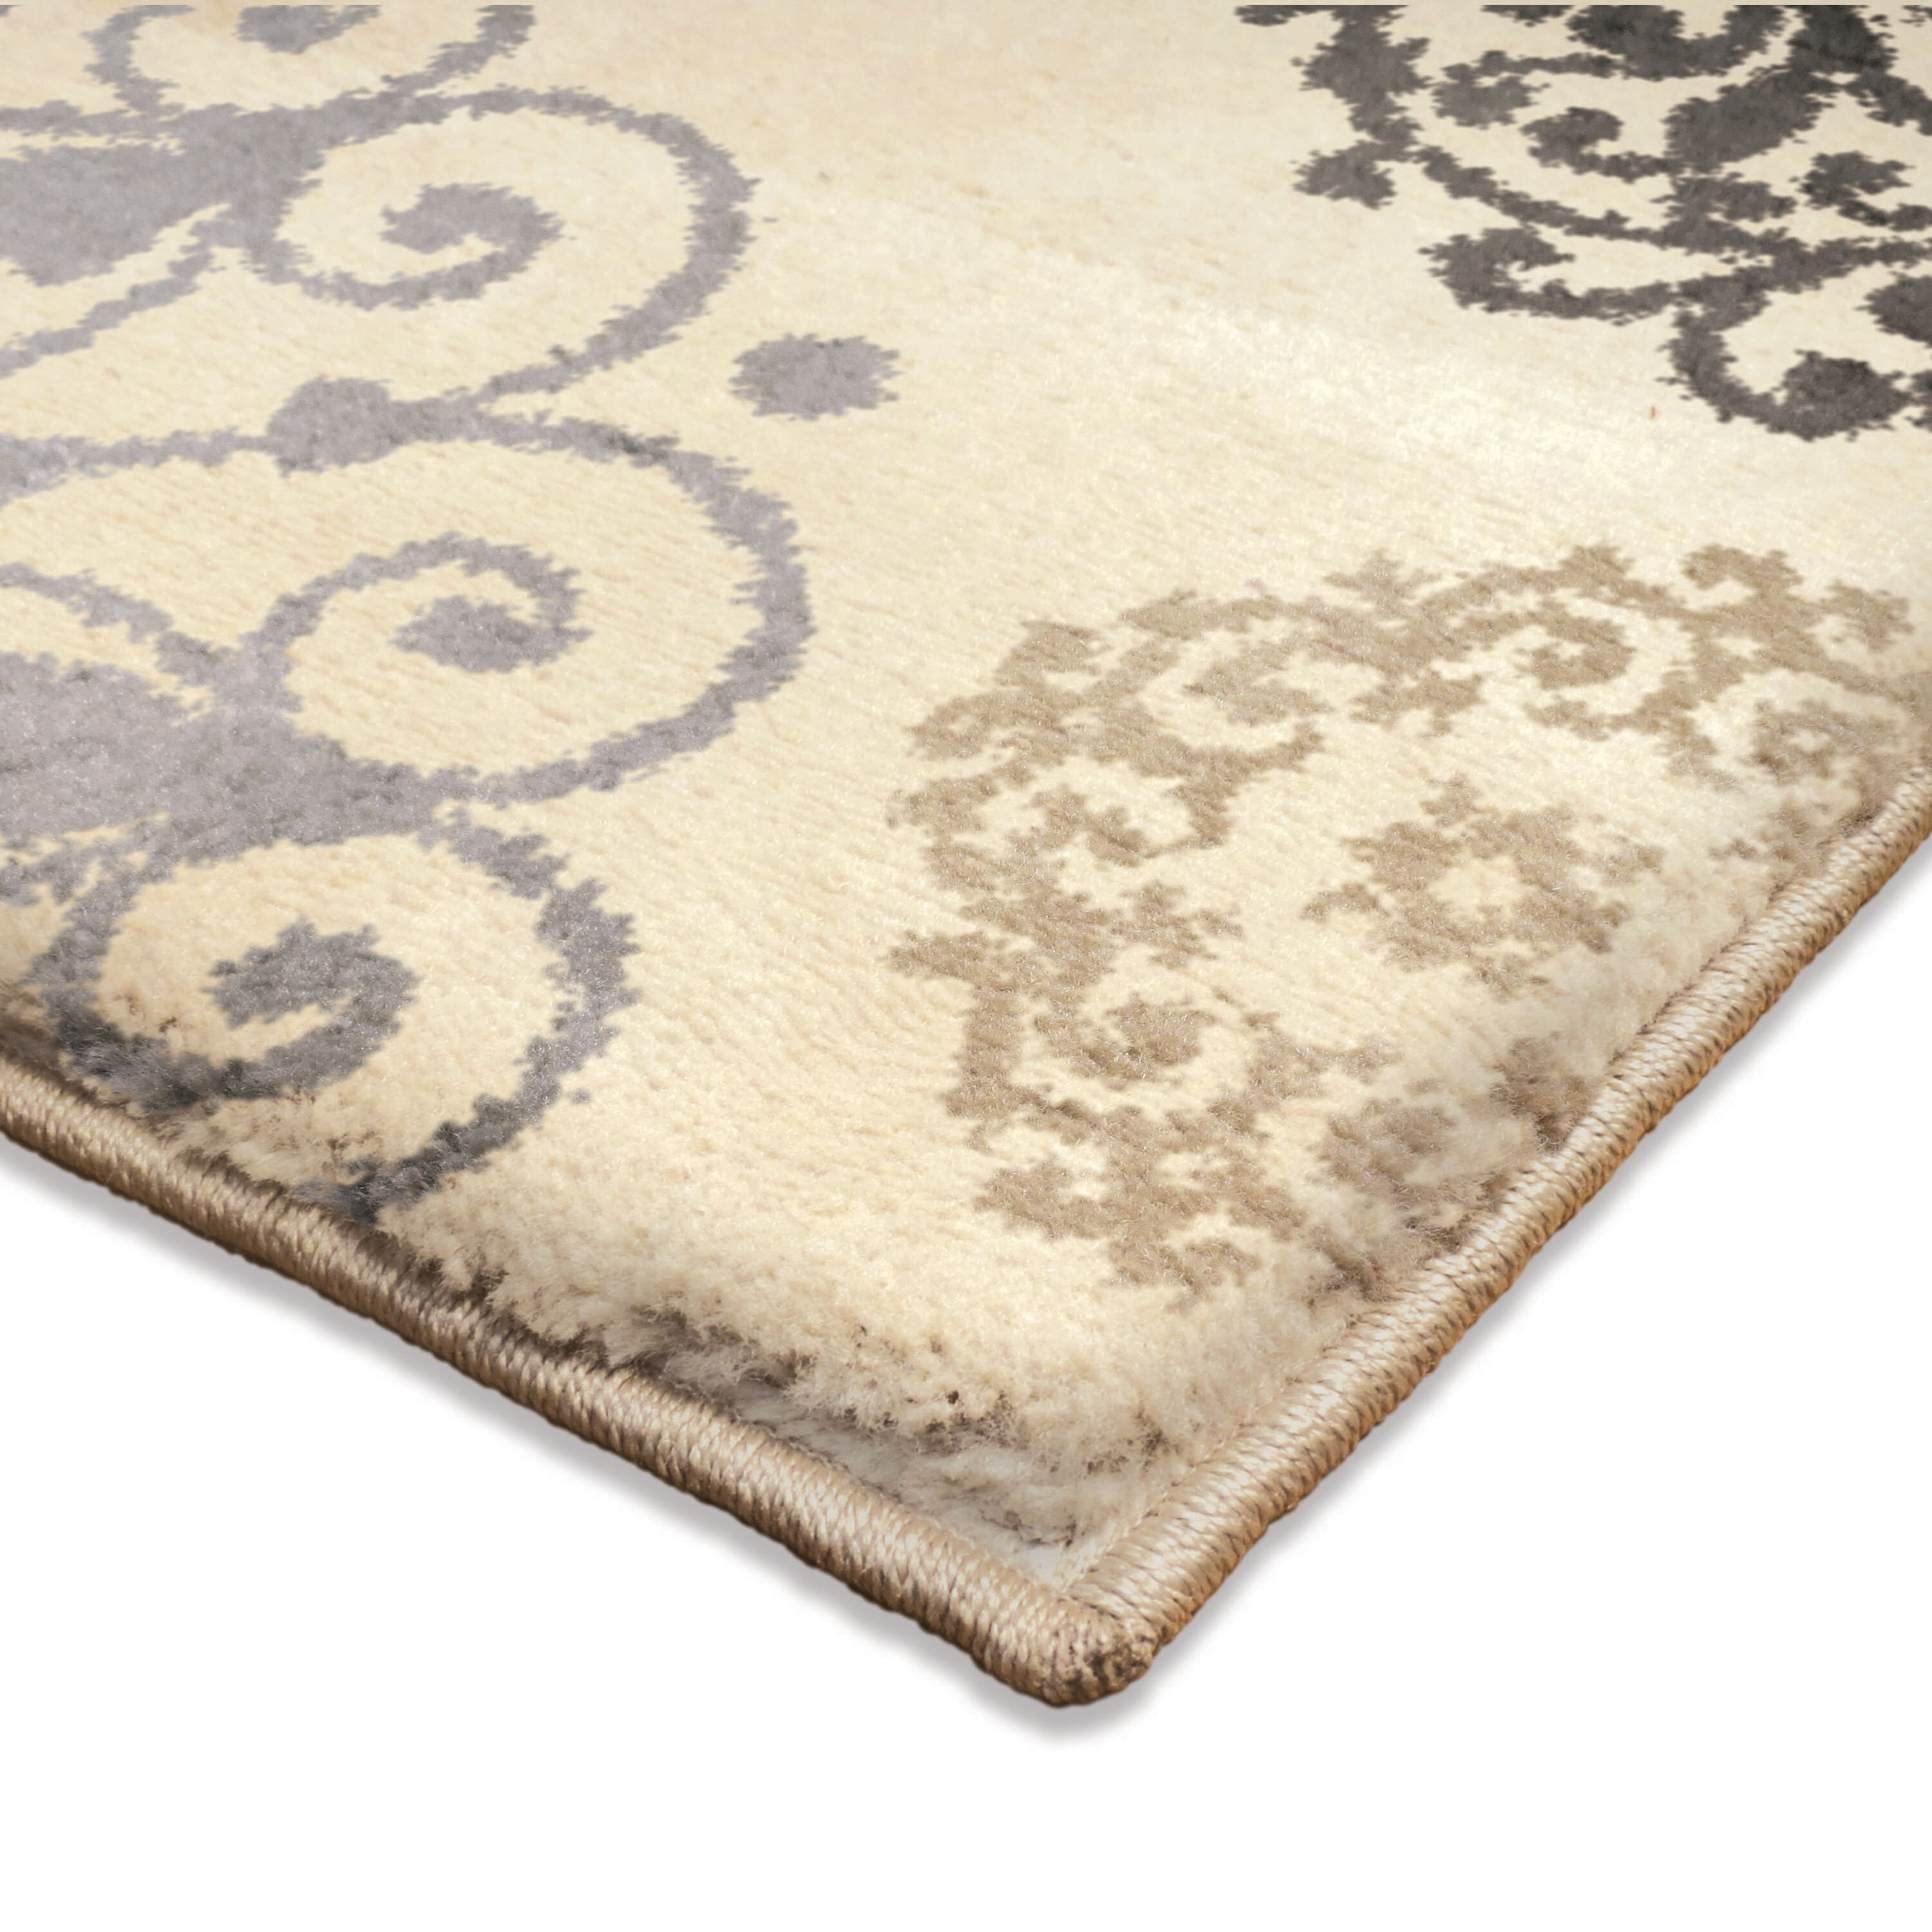 Three Posts Ivory Area Rug u0026 Reviews : Wayfair Supply